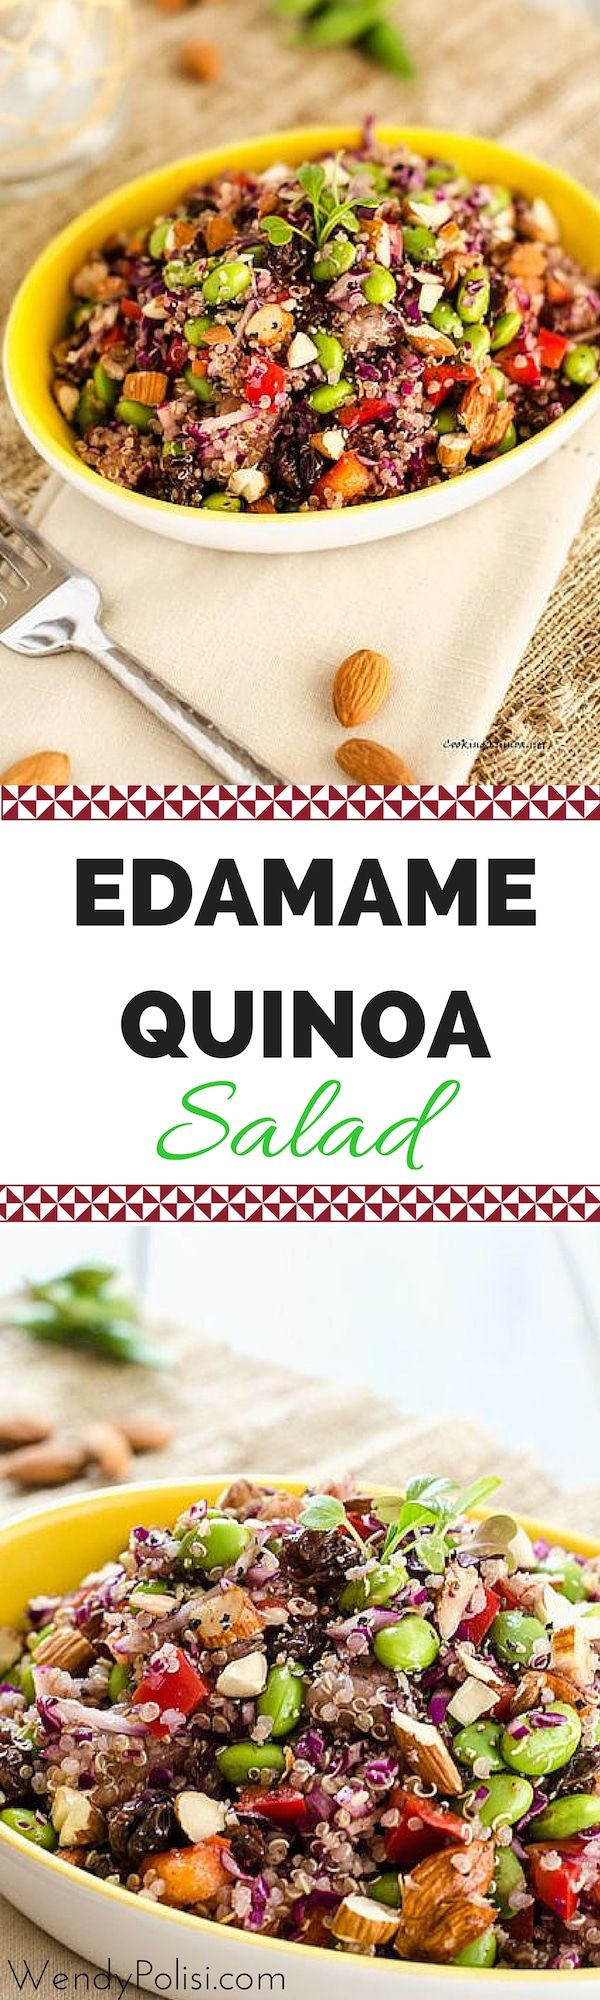 This Edamame Quinoa Salad is a delicious vegan salad that even meat-eaters will find hearty enough for a meal! It is a great make-ahead lunch for the busy work week! via @wendypolisi